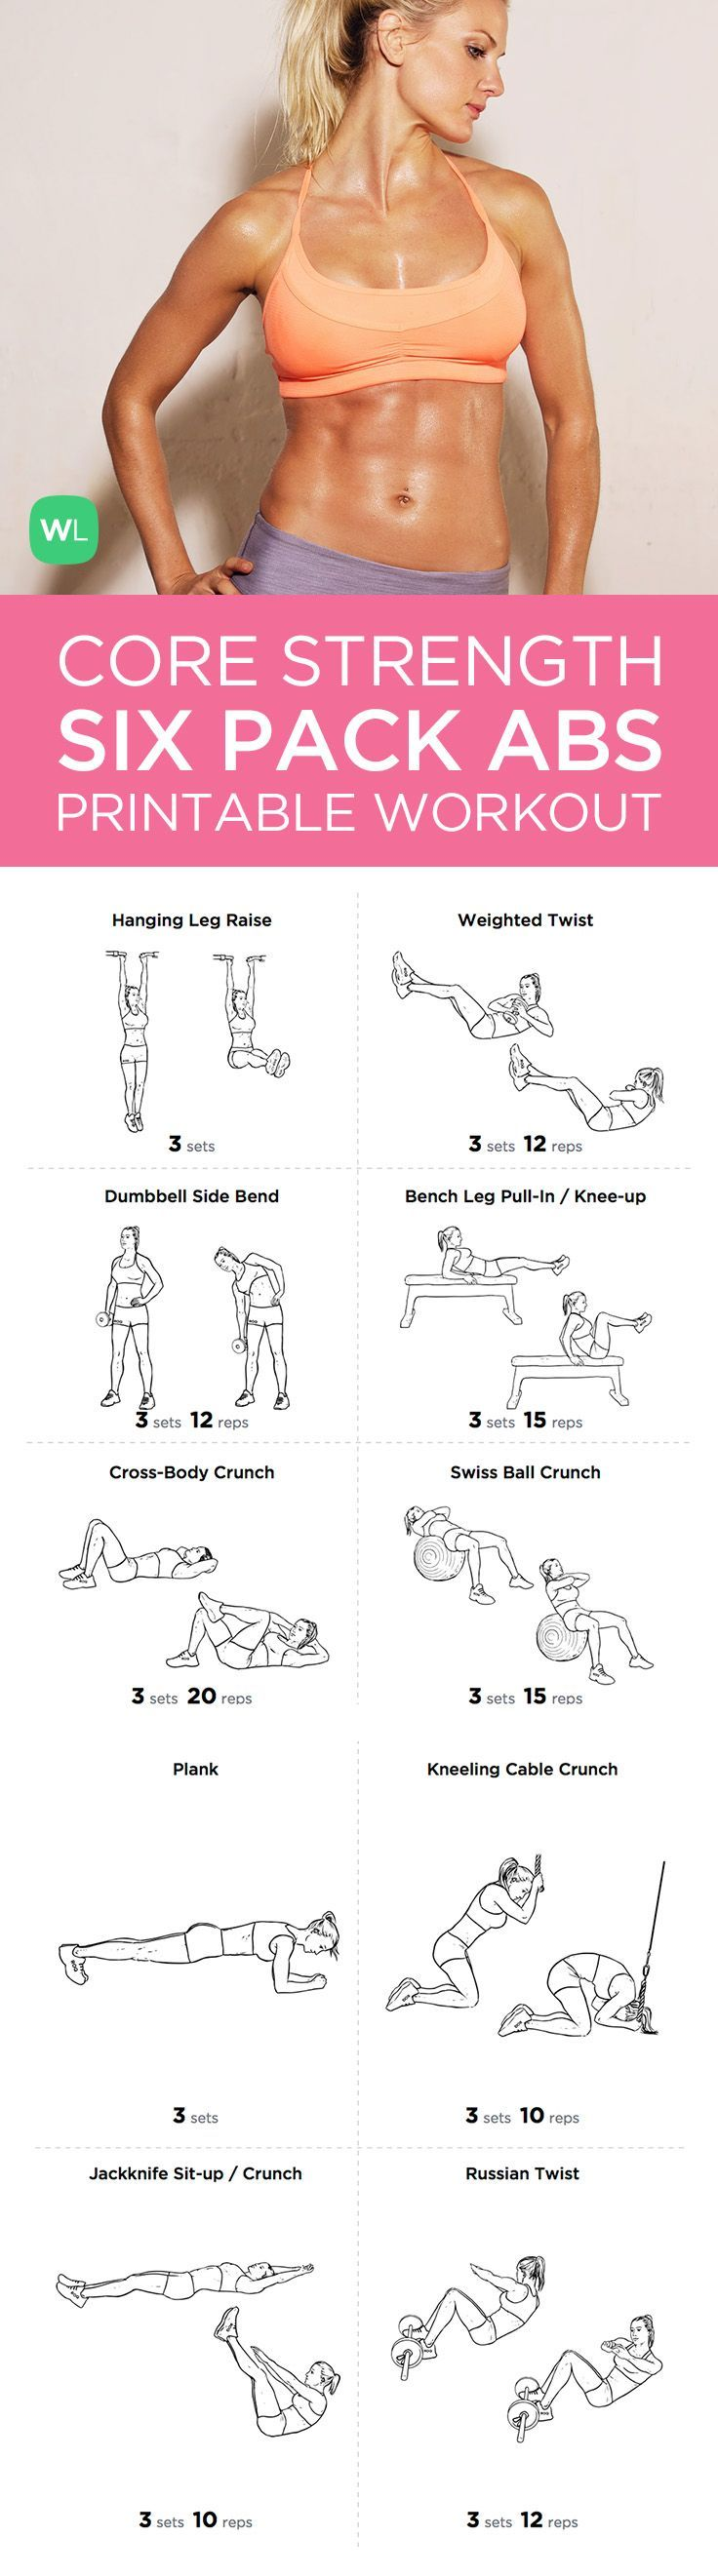 Want to get that perfect six pack? Try this comprehensive abdominal gym workout routine that will hit your upper and lower abs as well as obliques for a perfectly toned core: Six Pack Abs Core Strength Workout Routine for Men and Women.